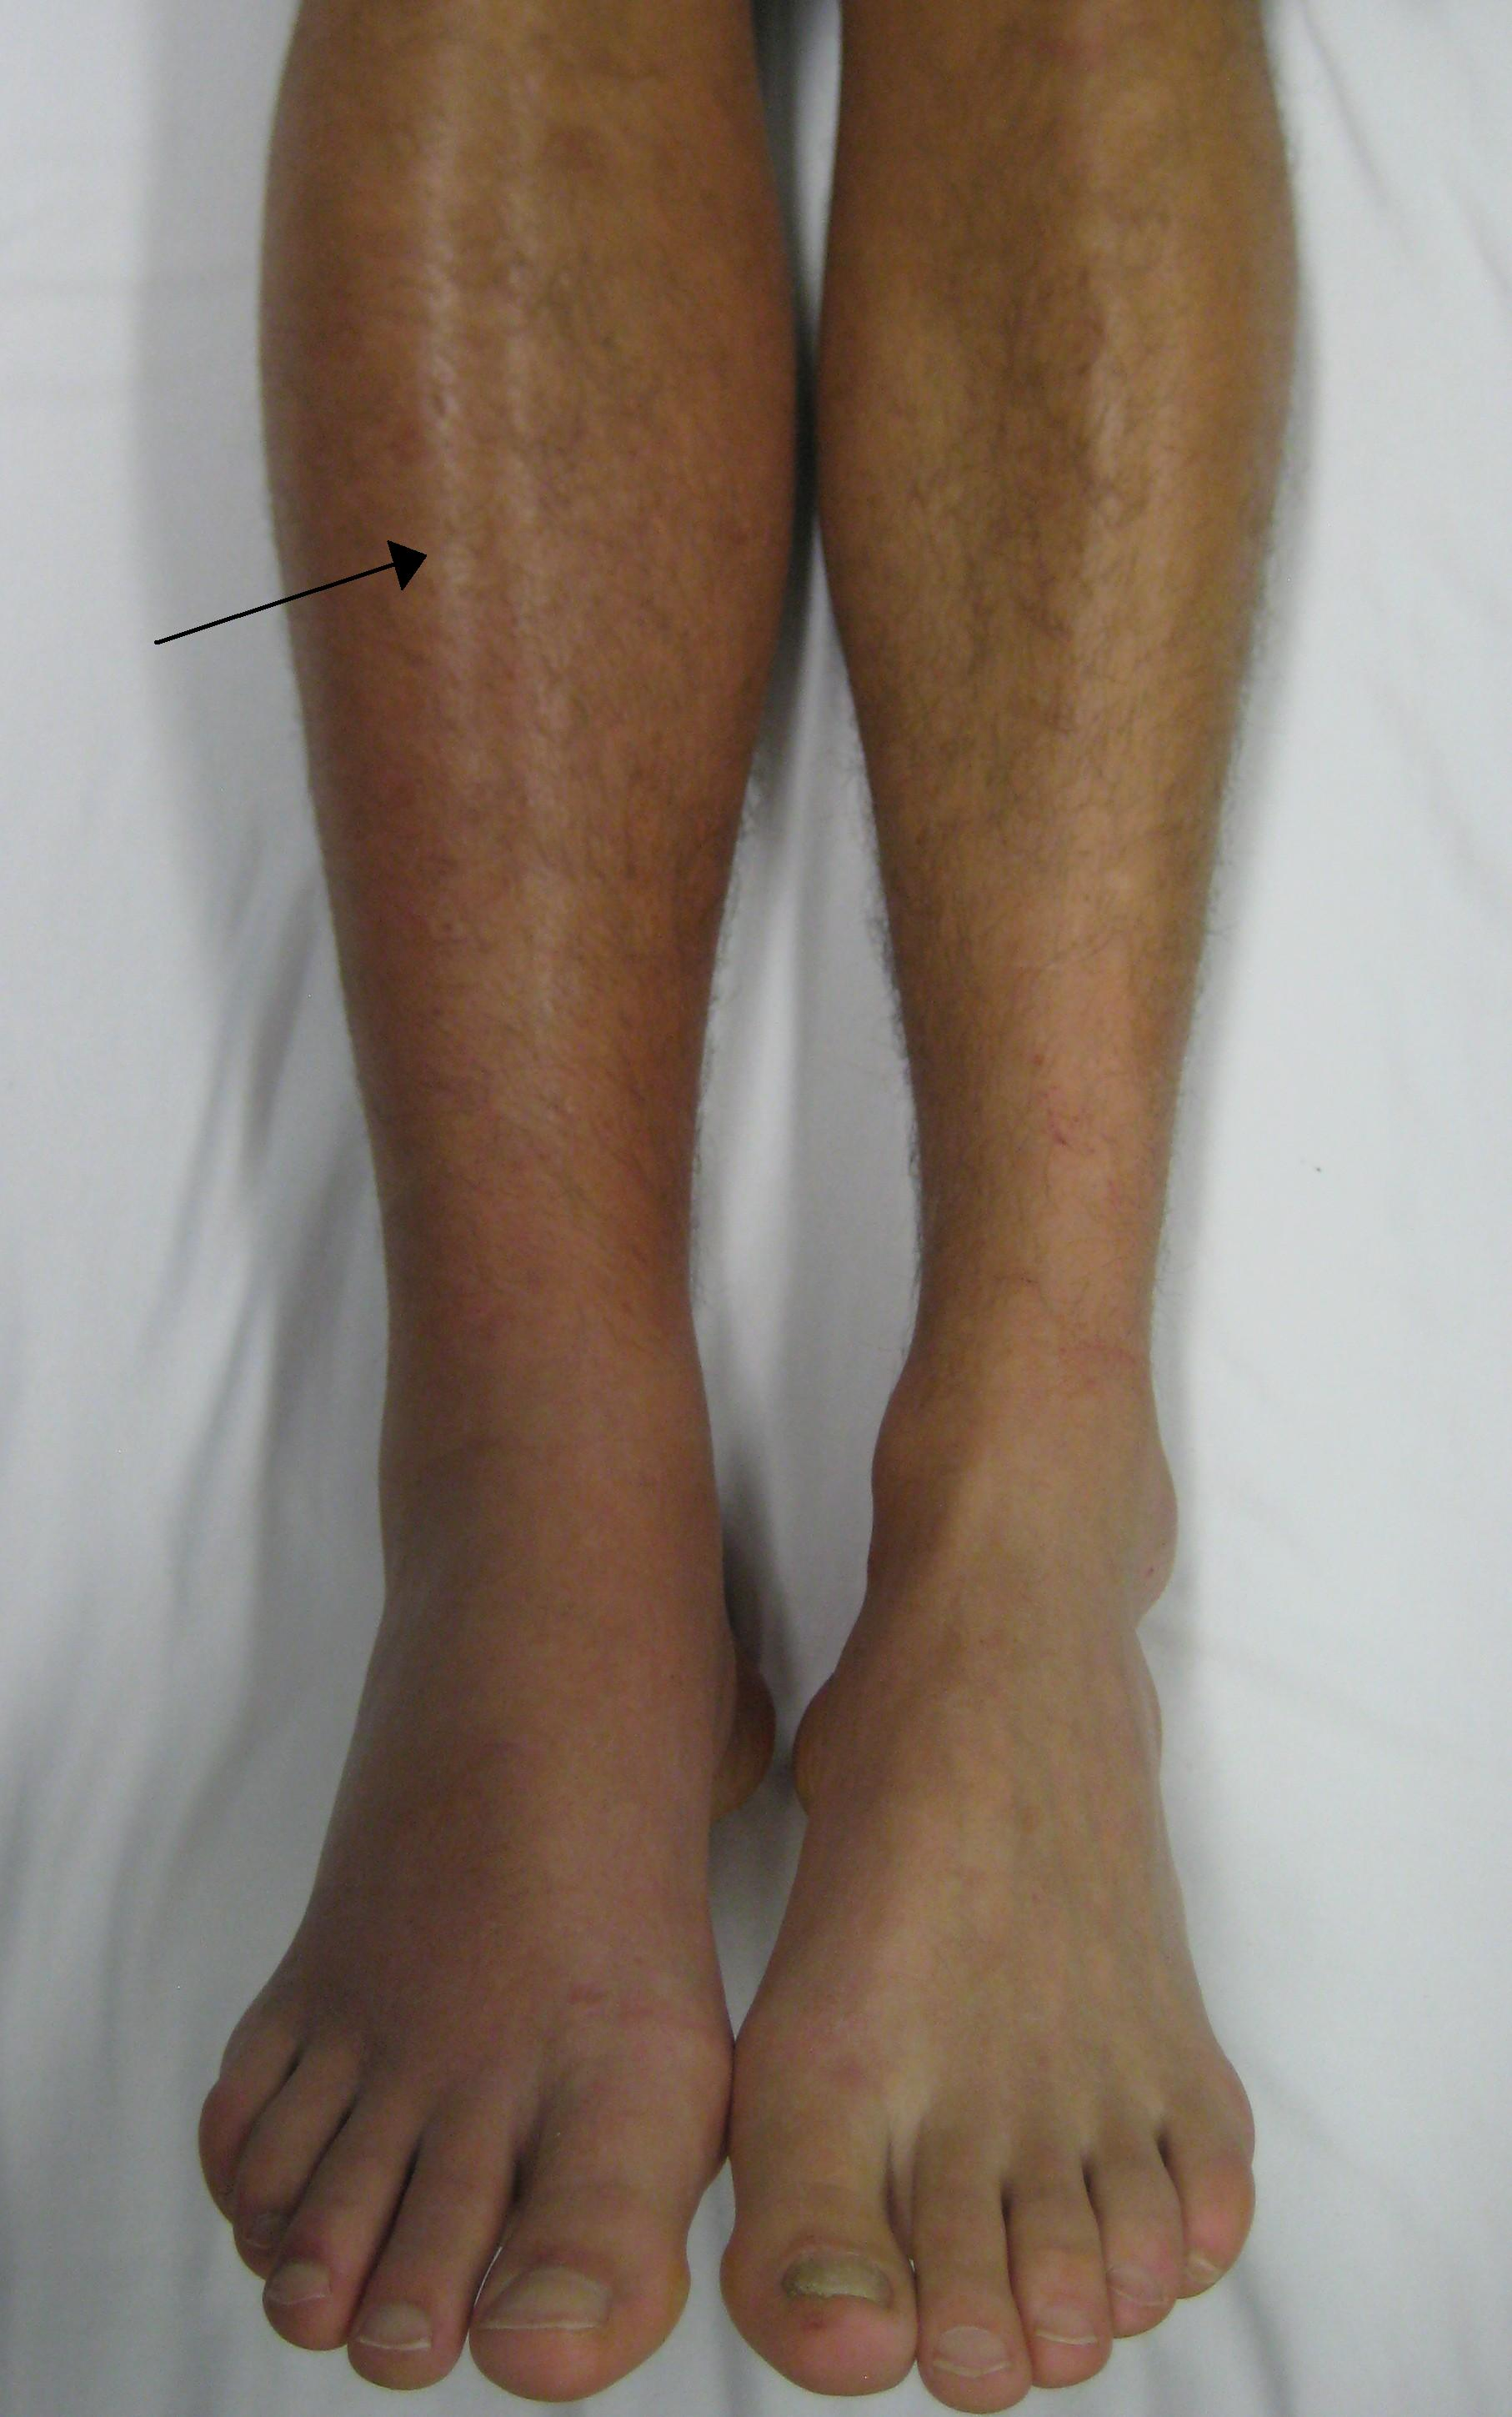 Physical appearance of a patient who has a DVT in the right lower leg (source)